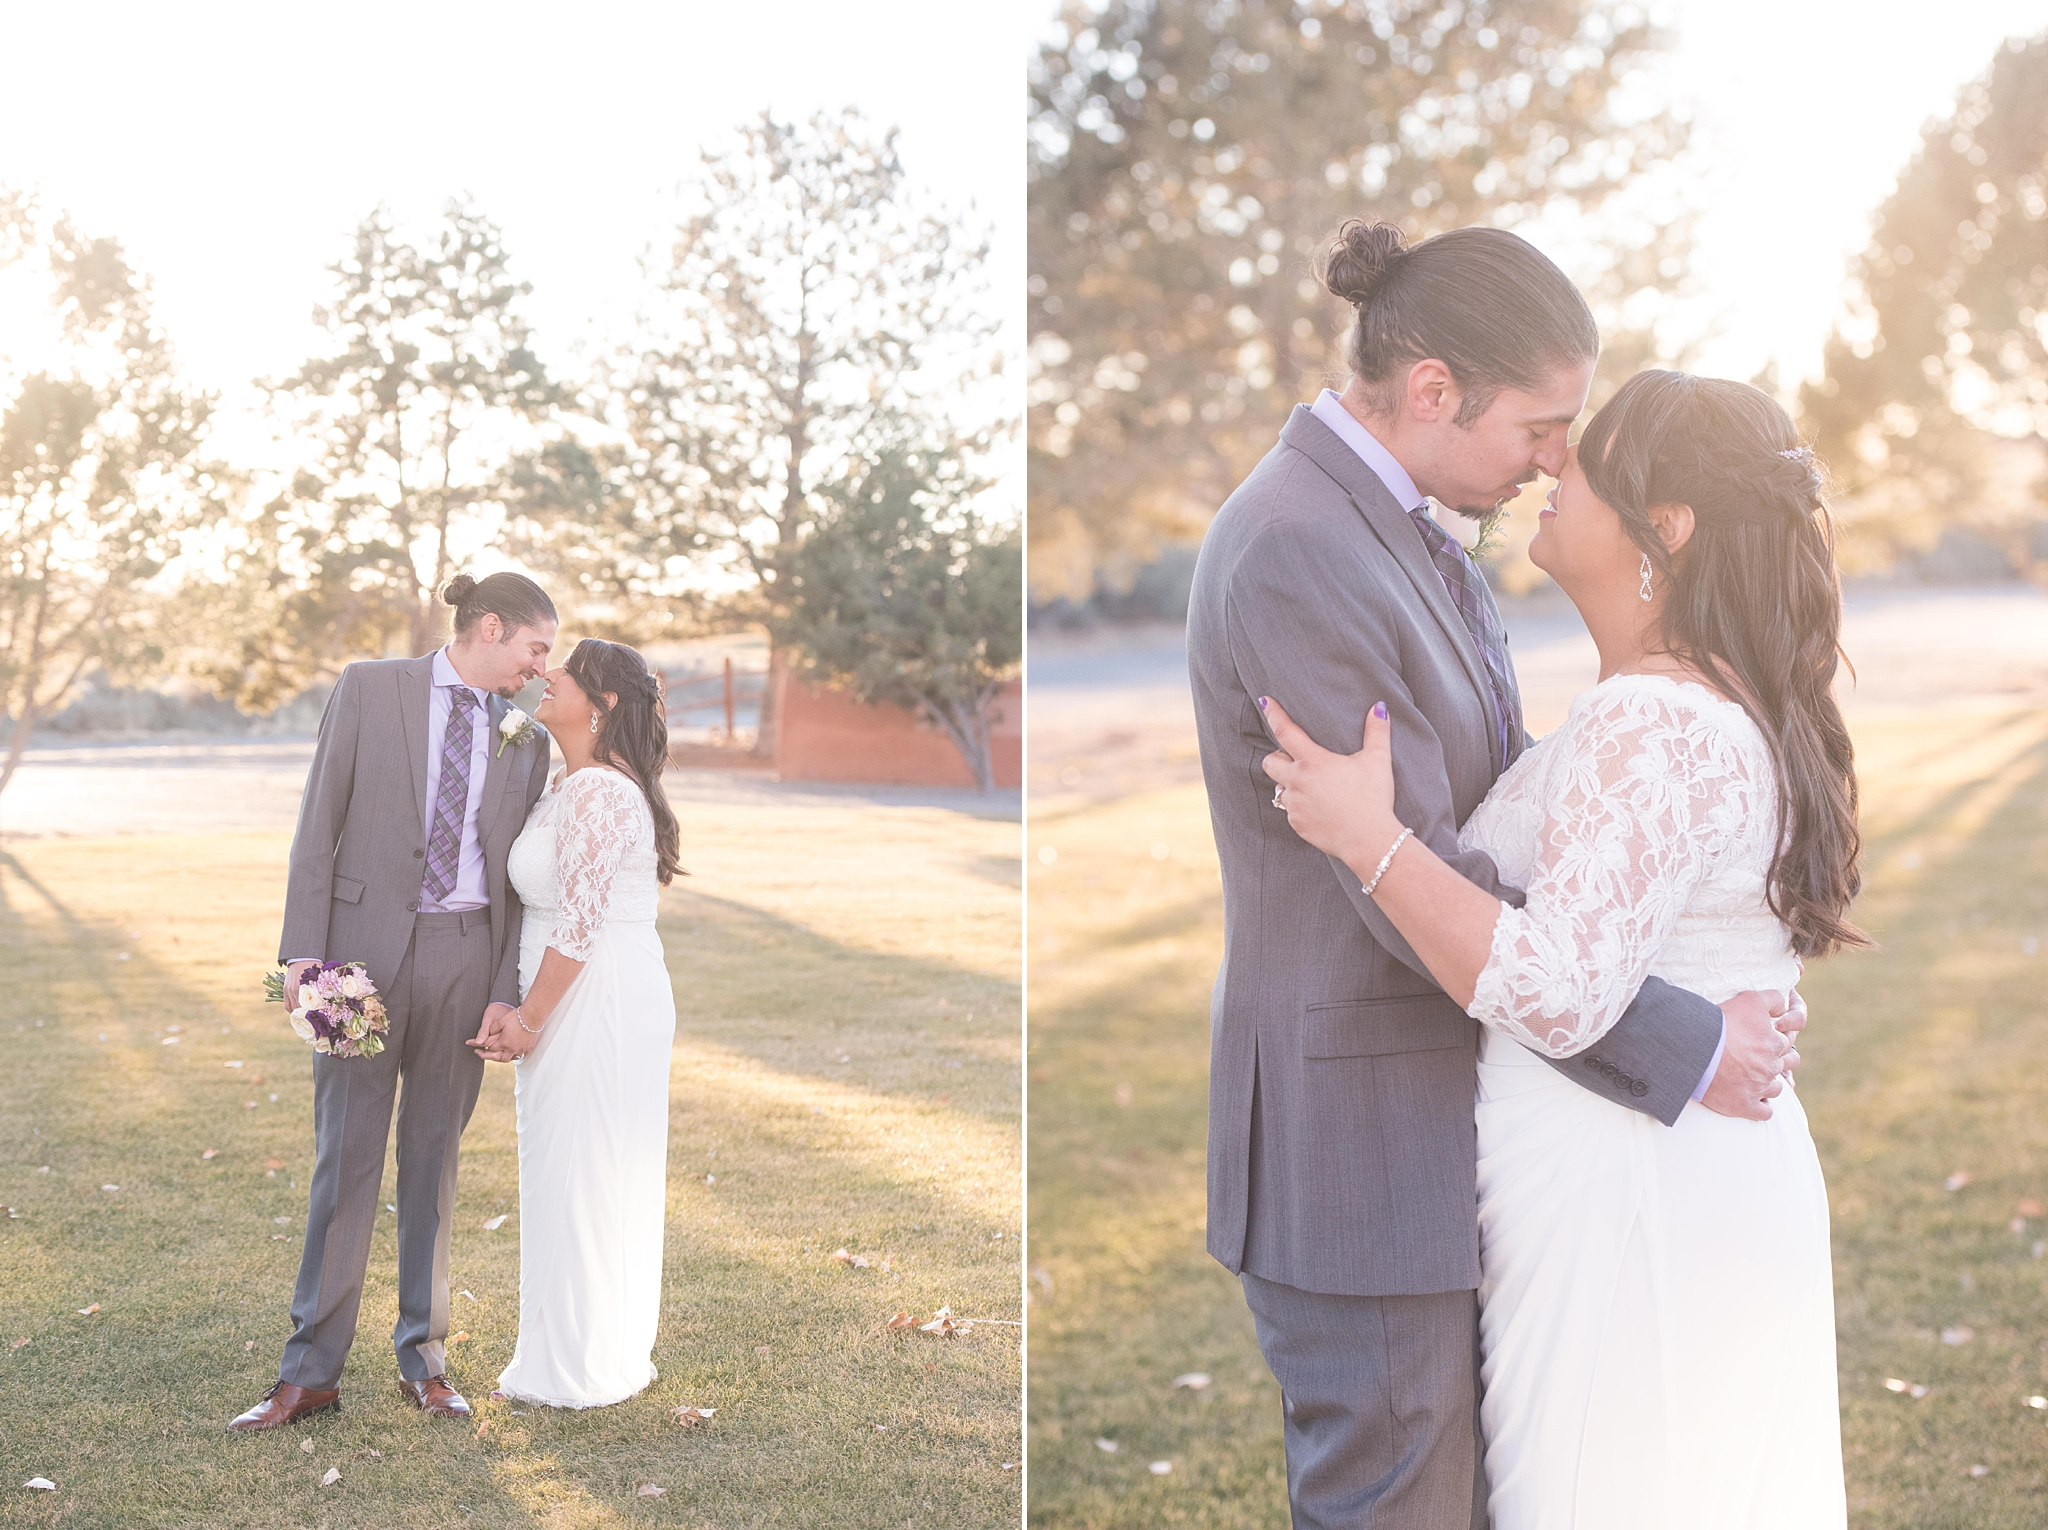 kaylakittsphotography-travis-michelle-prairie-star-albuquerque-wedding-photographer_0022.jpg